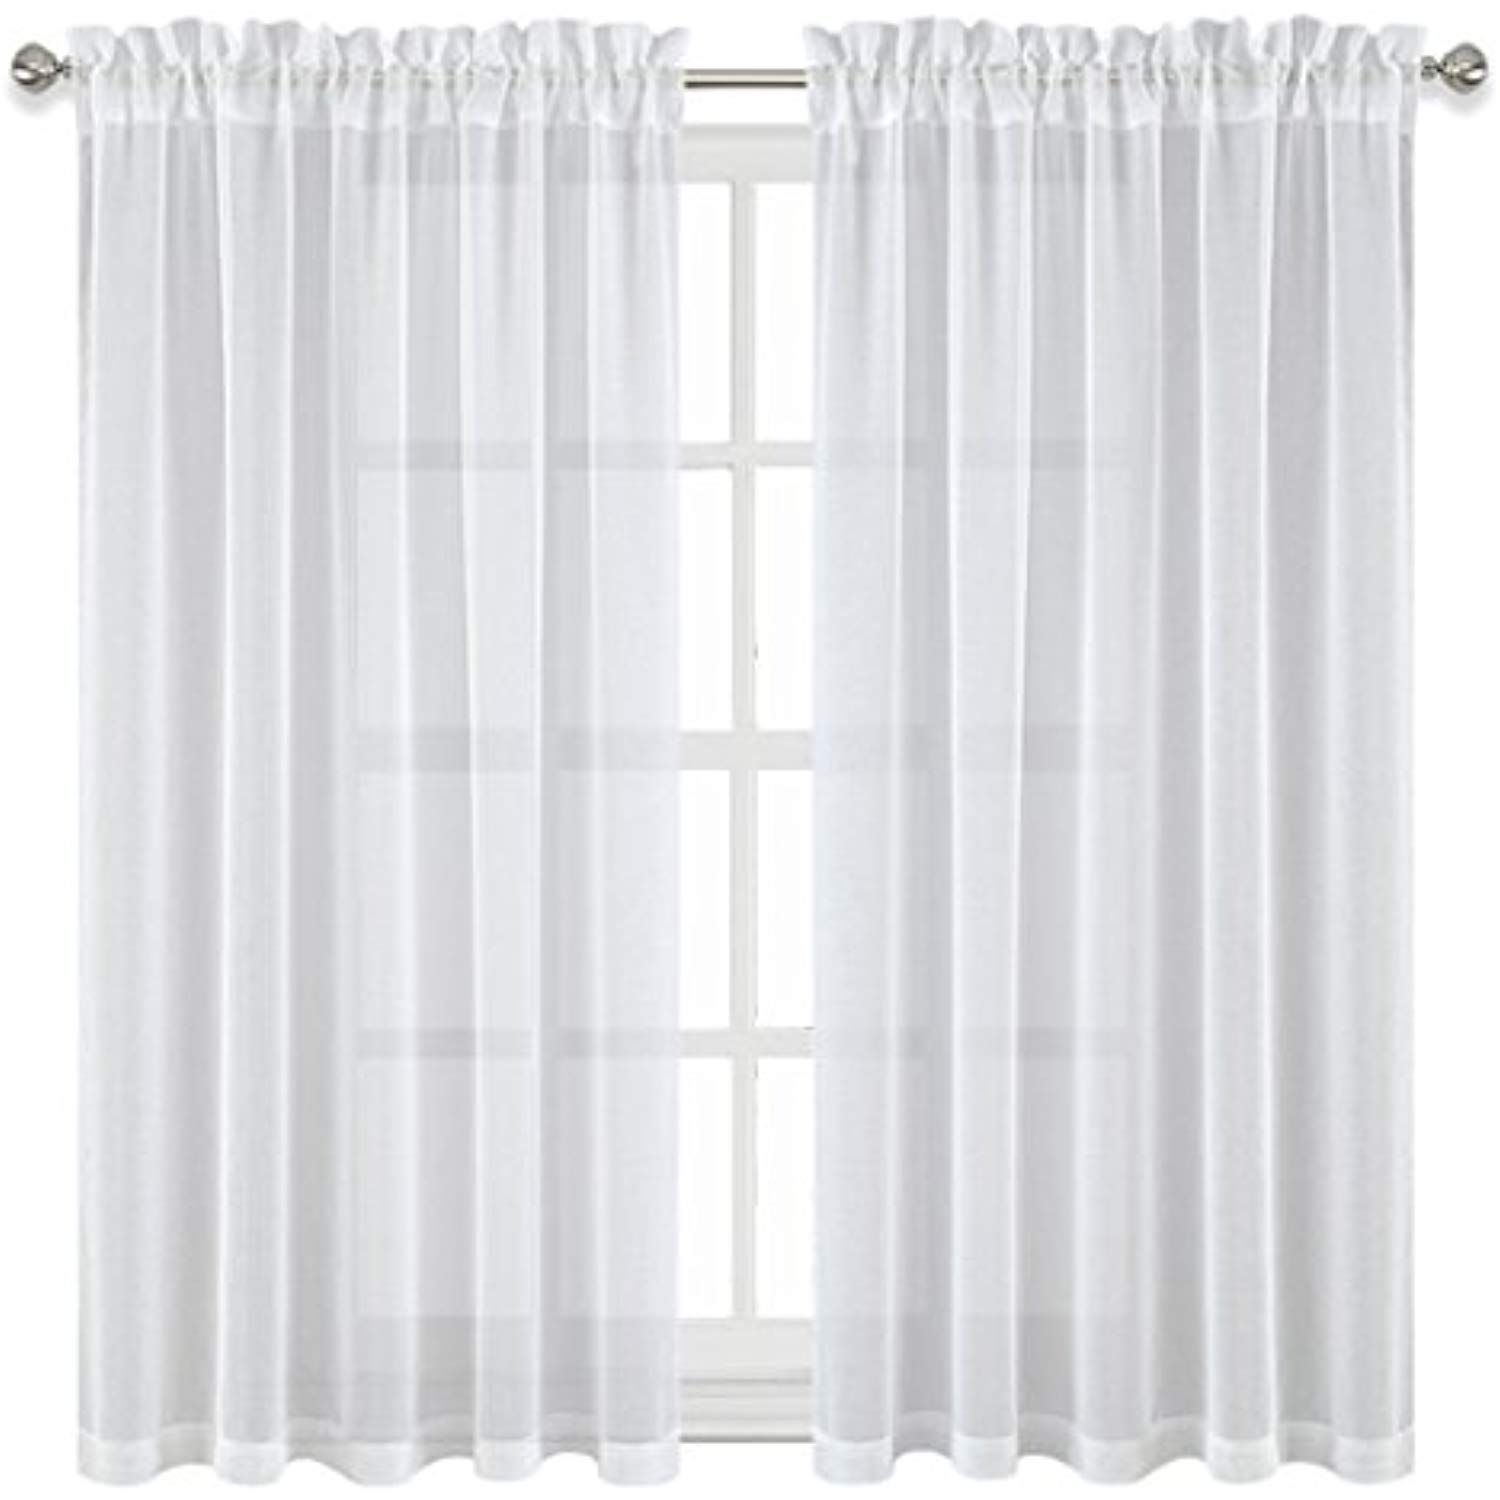 Pony Dance White Sheer Curtains Linen Look Short Voile Curtain